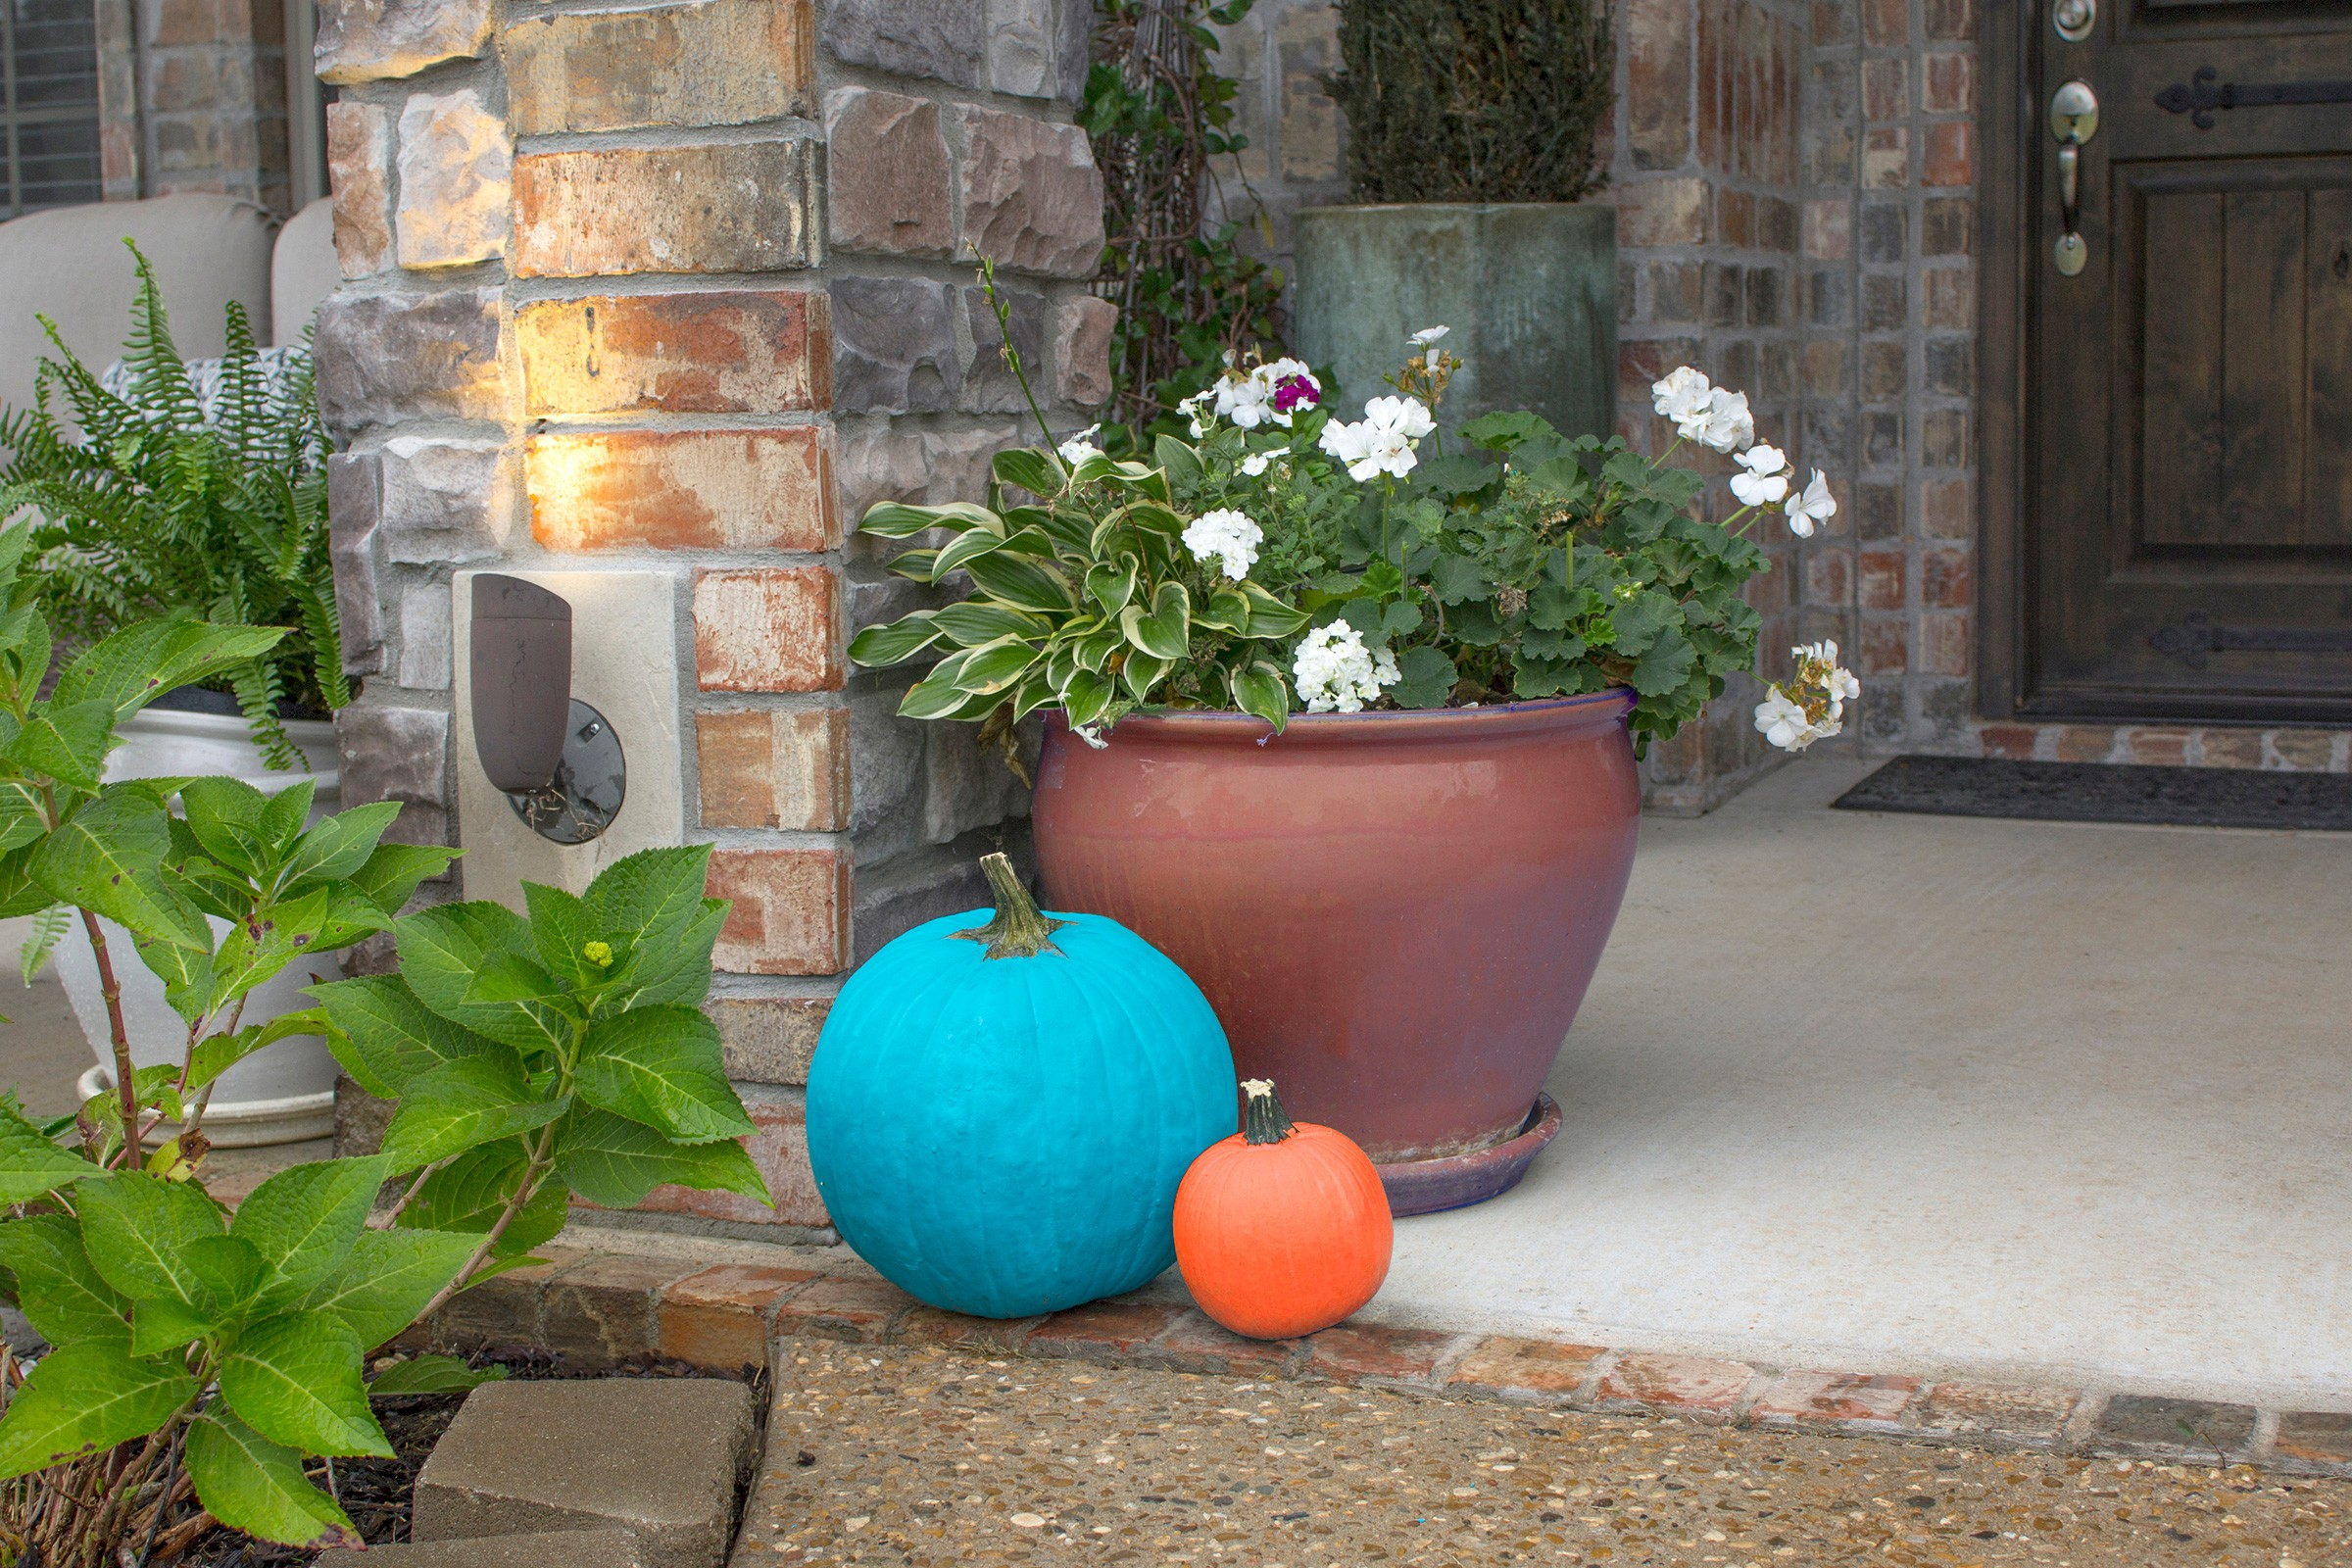 A teal pumpkin sits outside a house to symbolize Halloween food allergy awareness